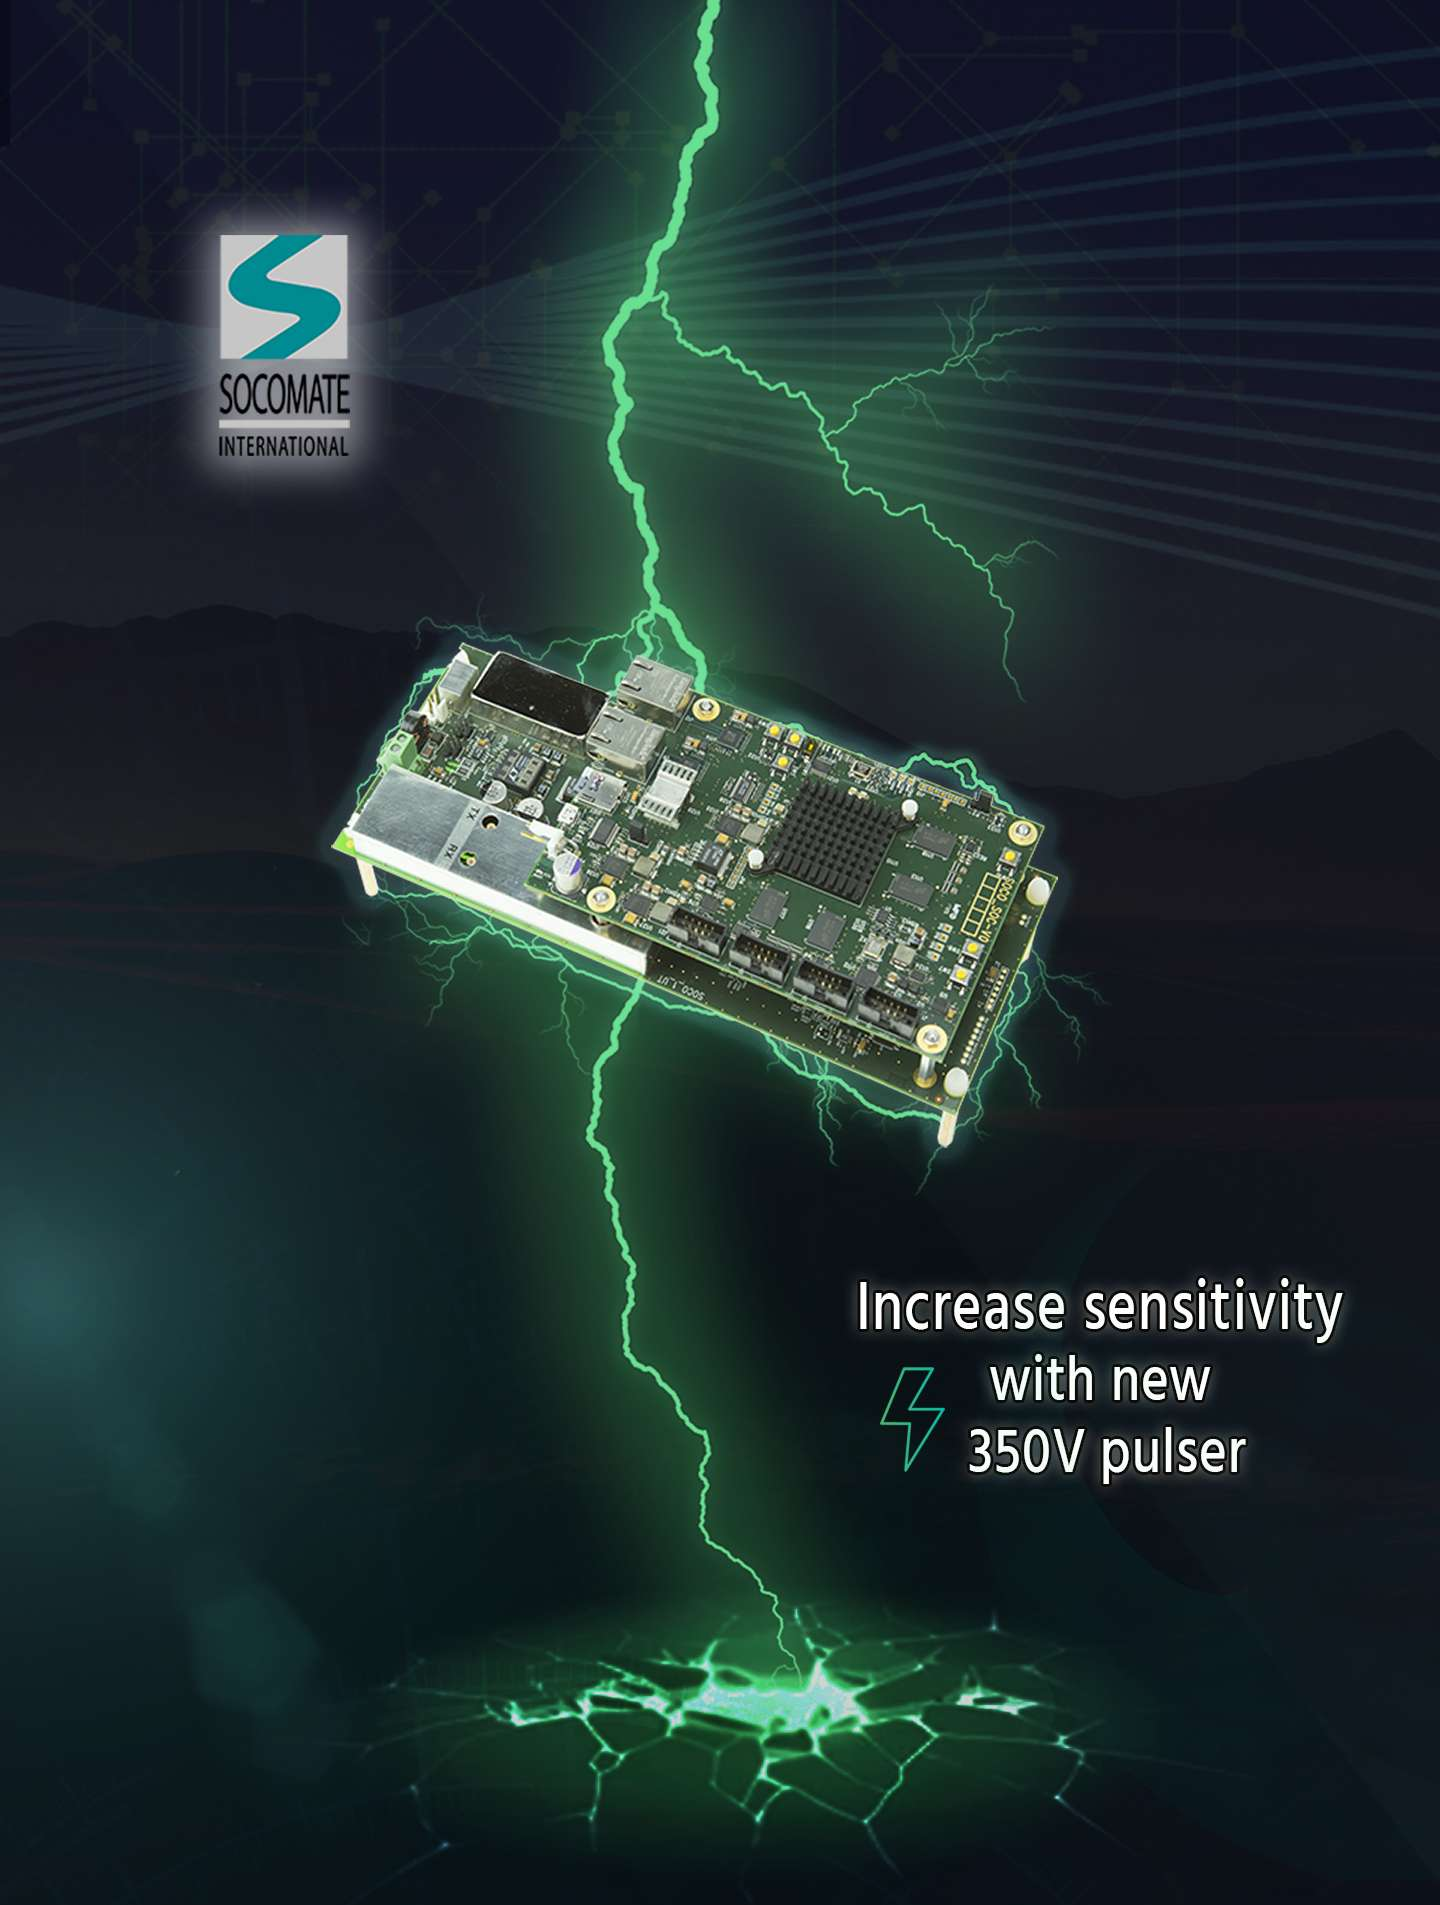 Increase sensitivity with a higher UT pulser